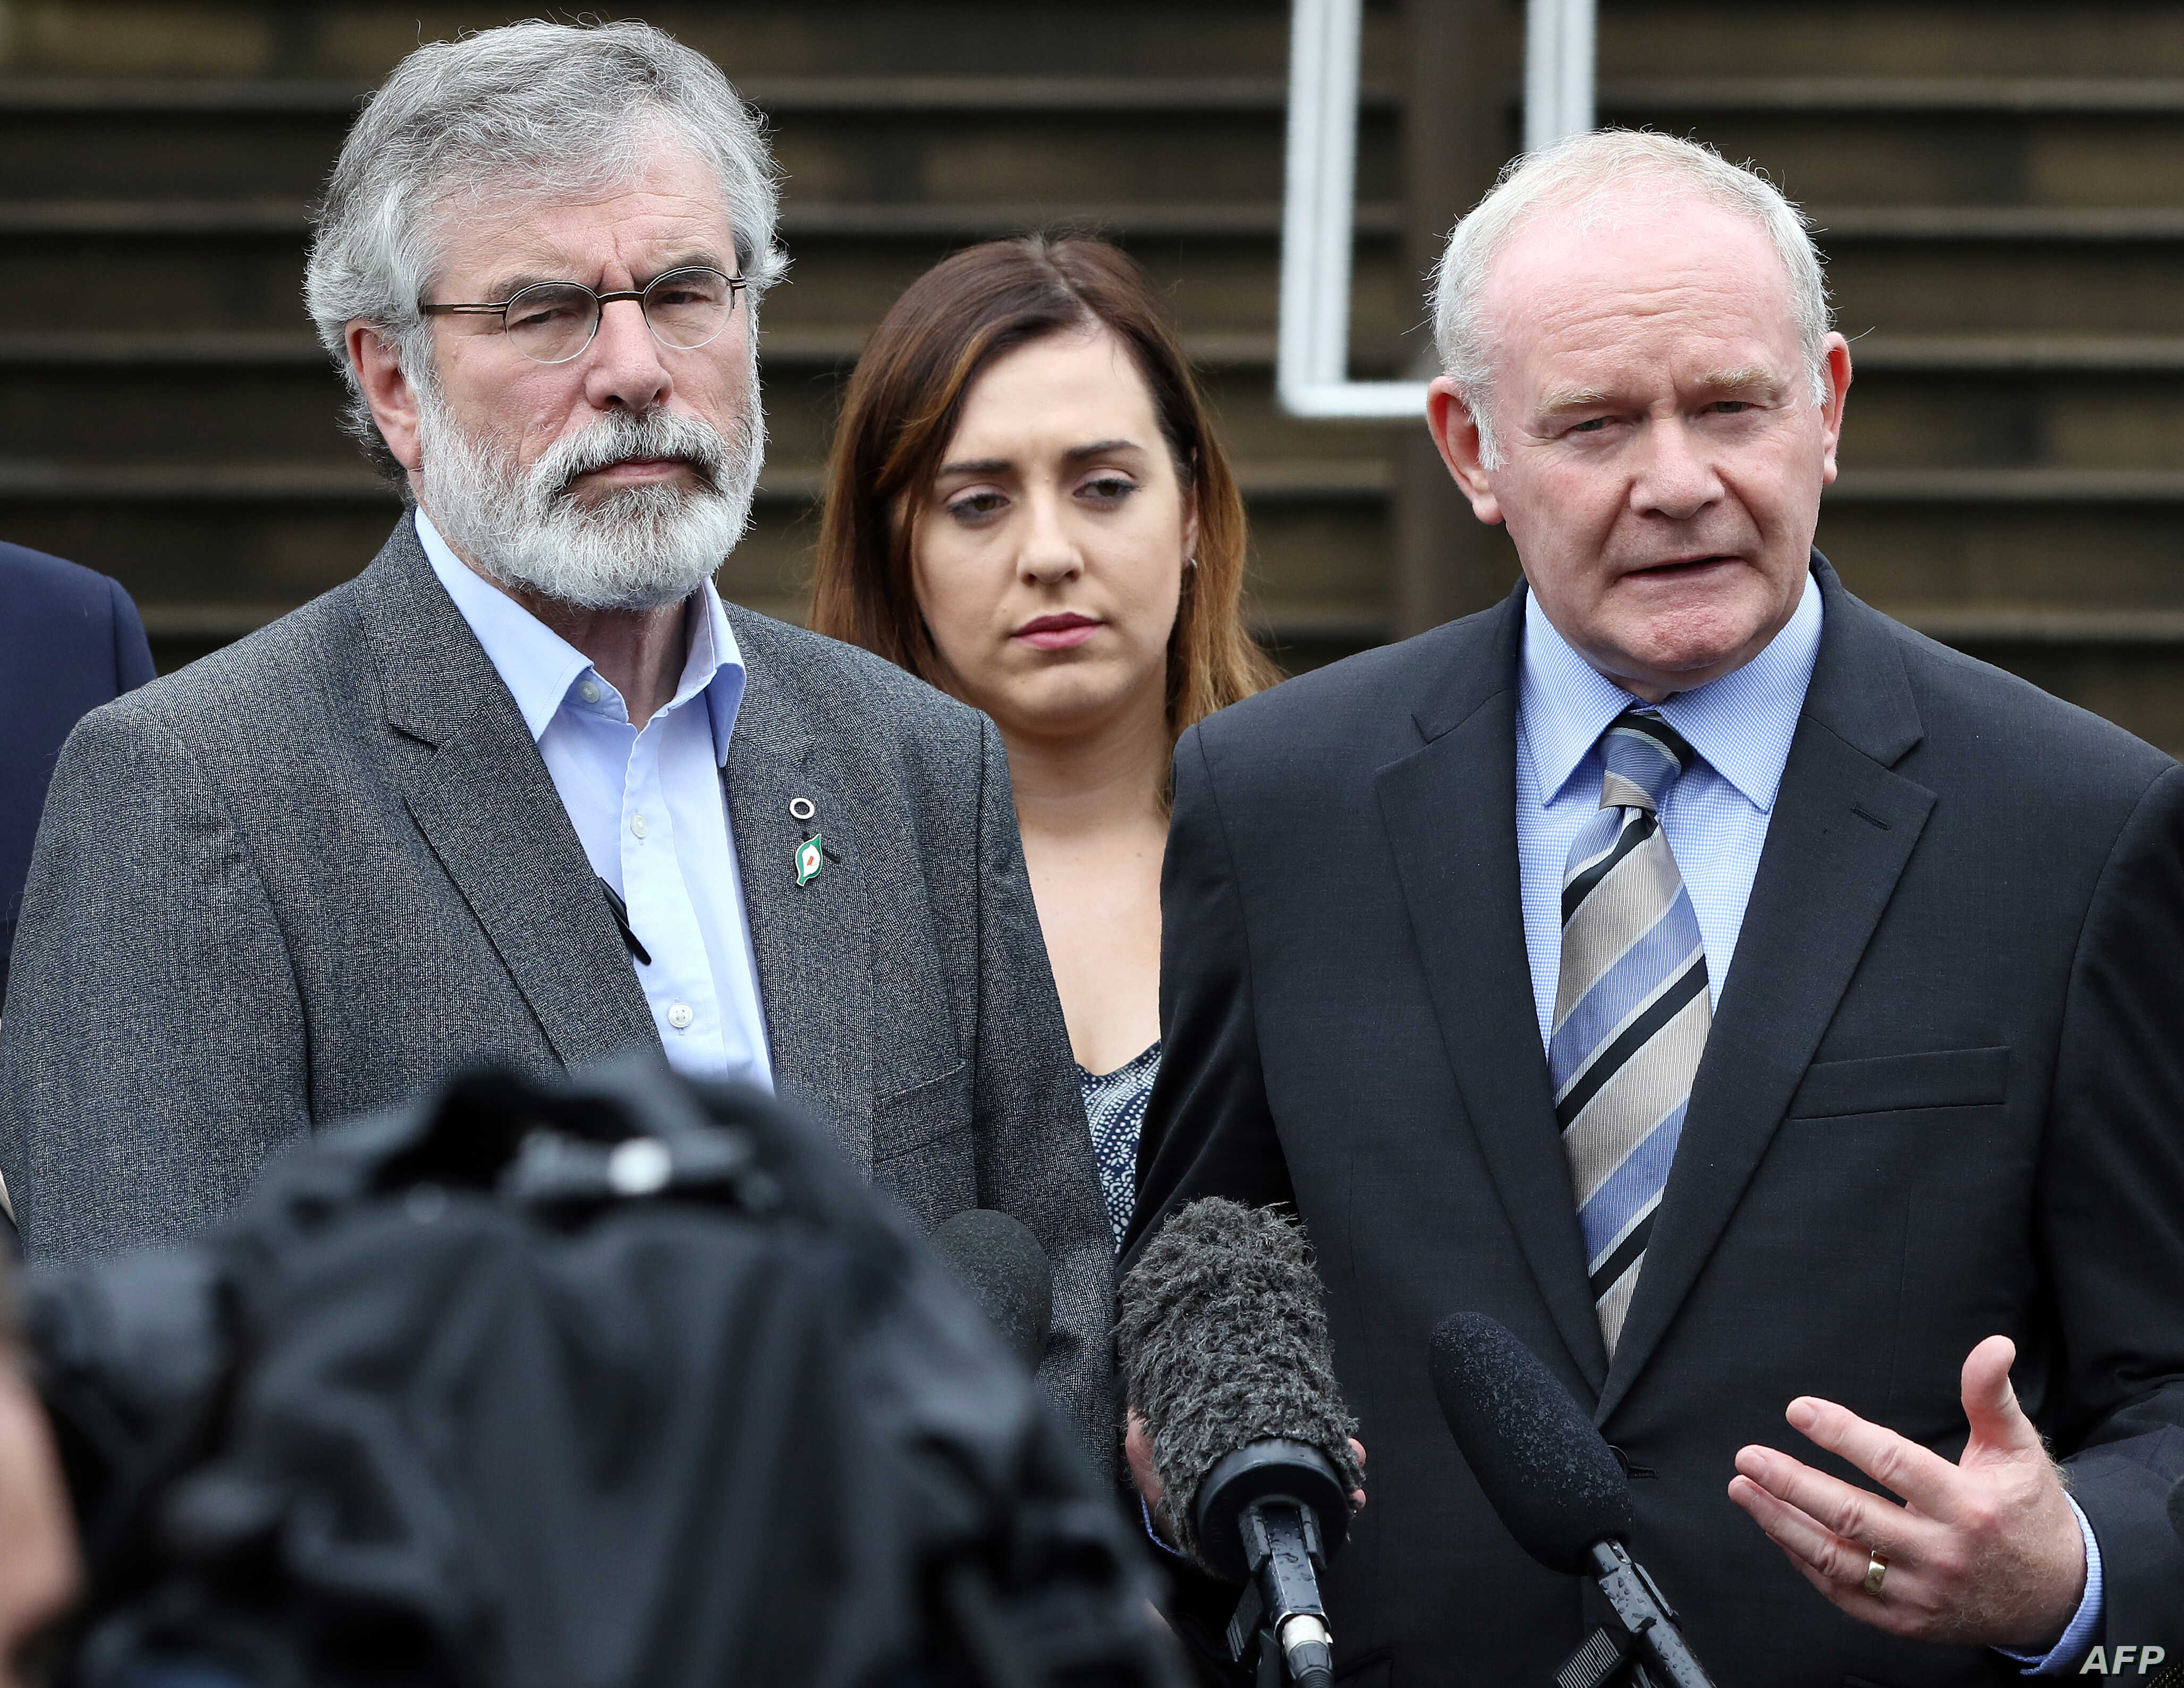 Sinn Fein leader Gerry Adams (L) and Sinn Fein politician and Northern Ireland's Deputy First Minister, Martin Mcguinness (R) speak during a press conference outside Stormont Castle in Belfast, Northern Ireland on June 24, 2016, following the result